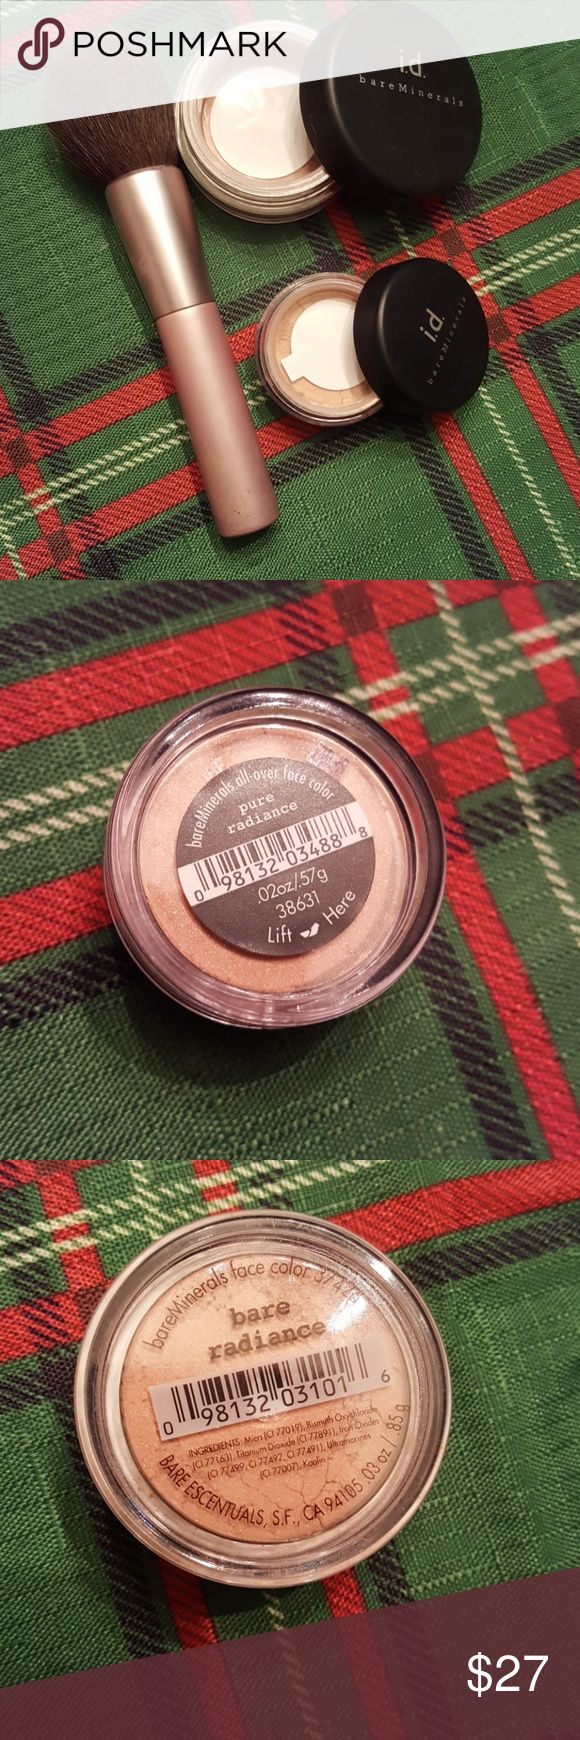 I.d. bare minerals weightless powder colors Bare radiance face color .03 oz Pure radiance all over face color .02 oz both are new not open. i.d. bare minerals Makeup Face Powder